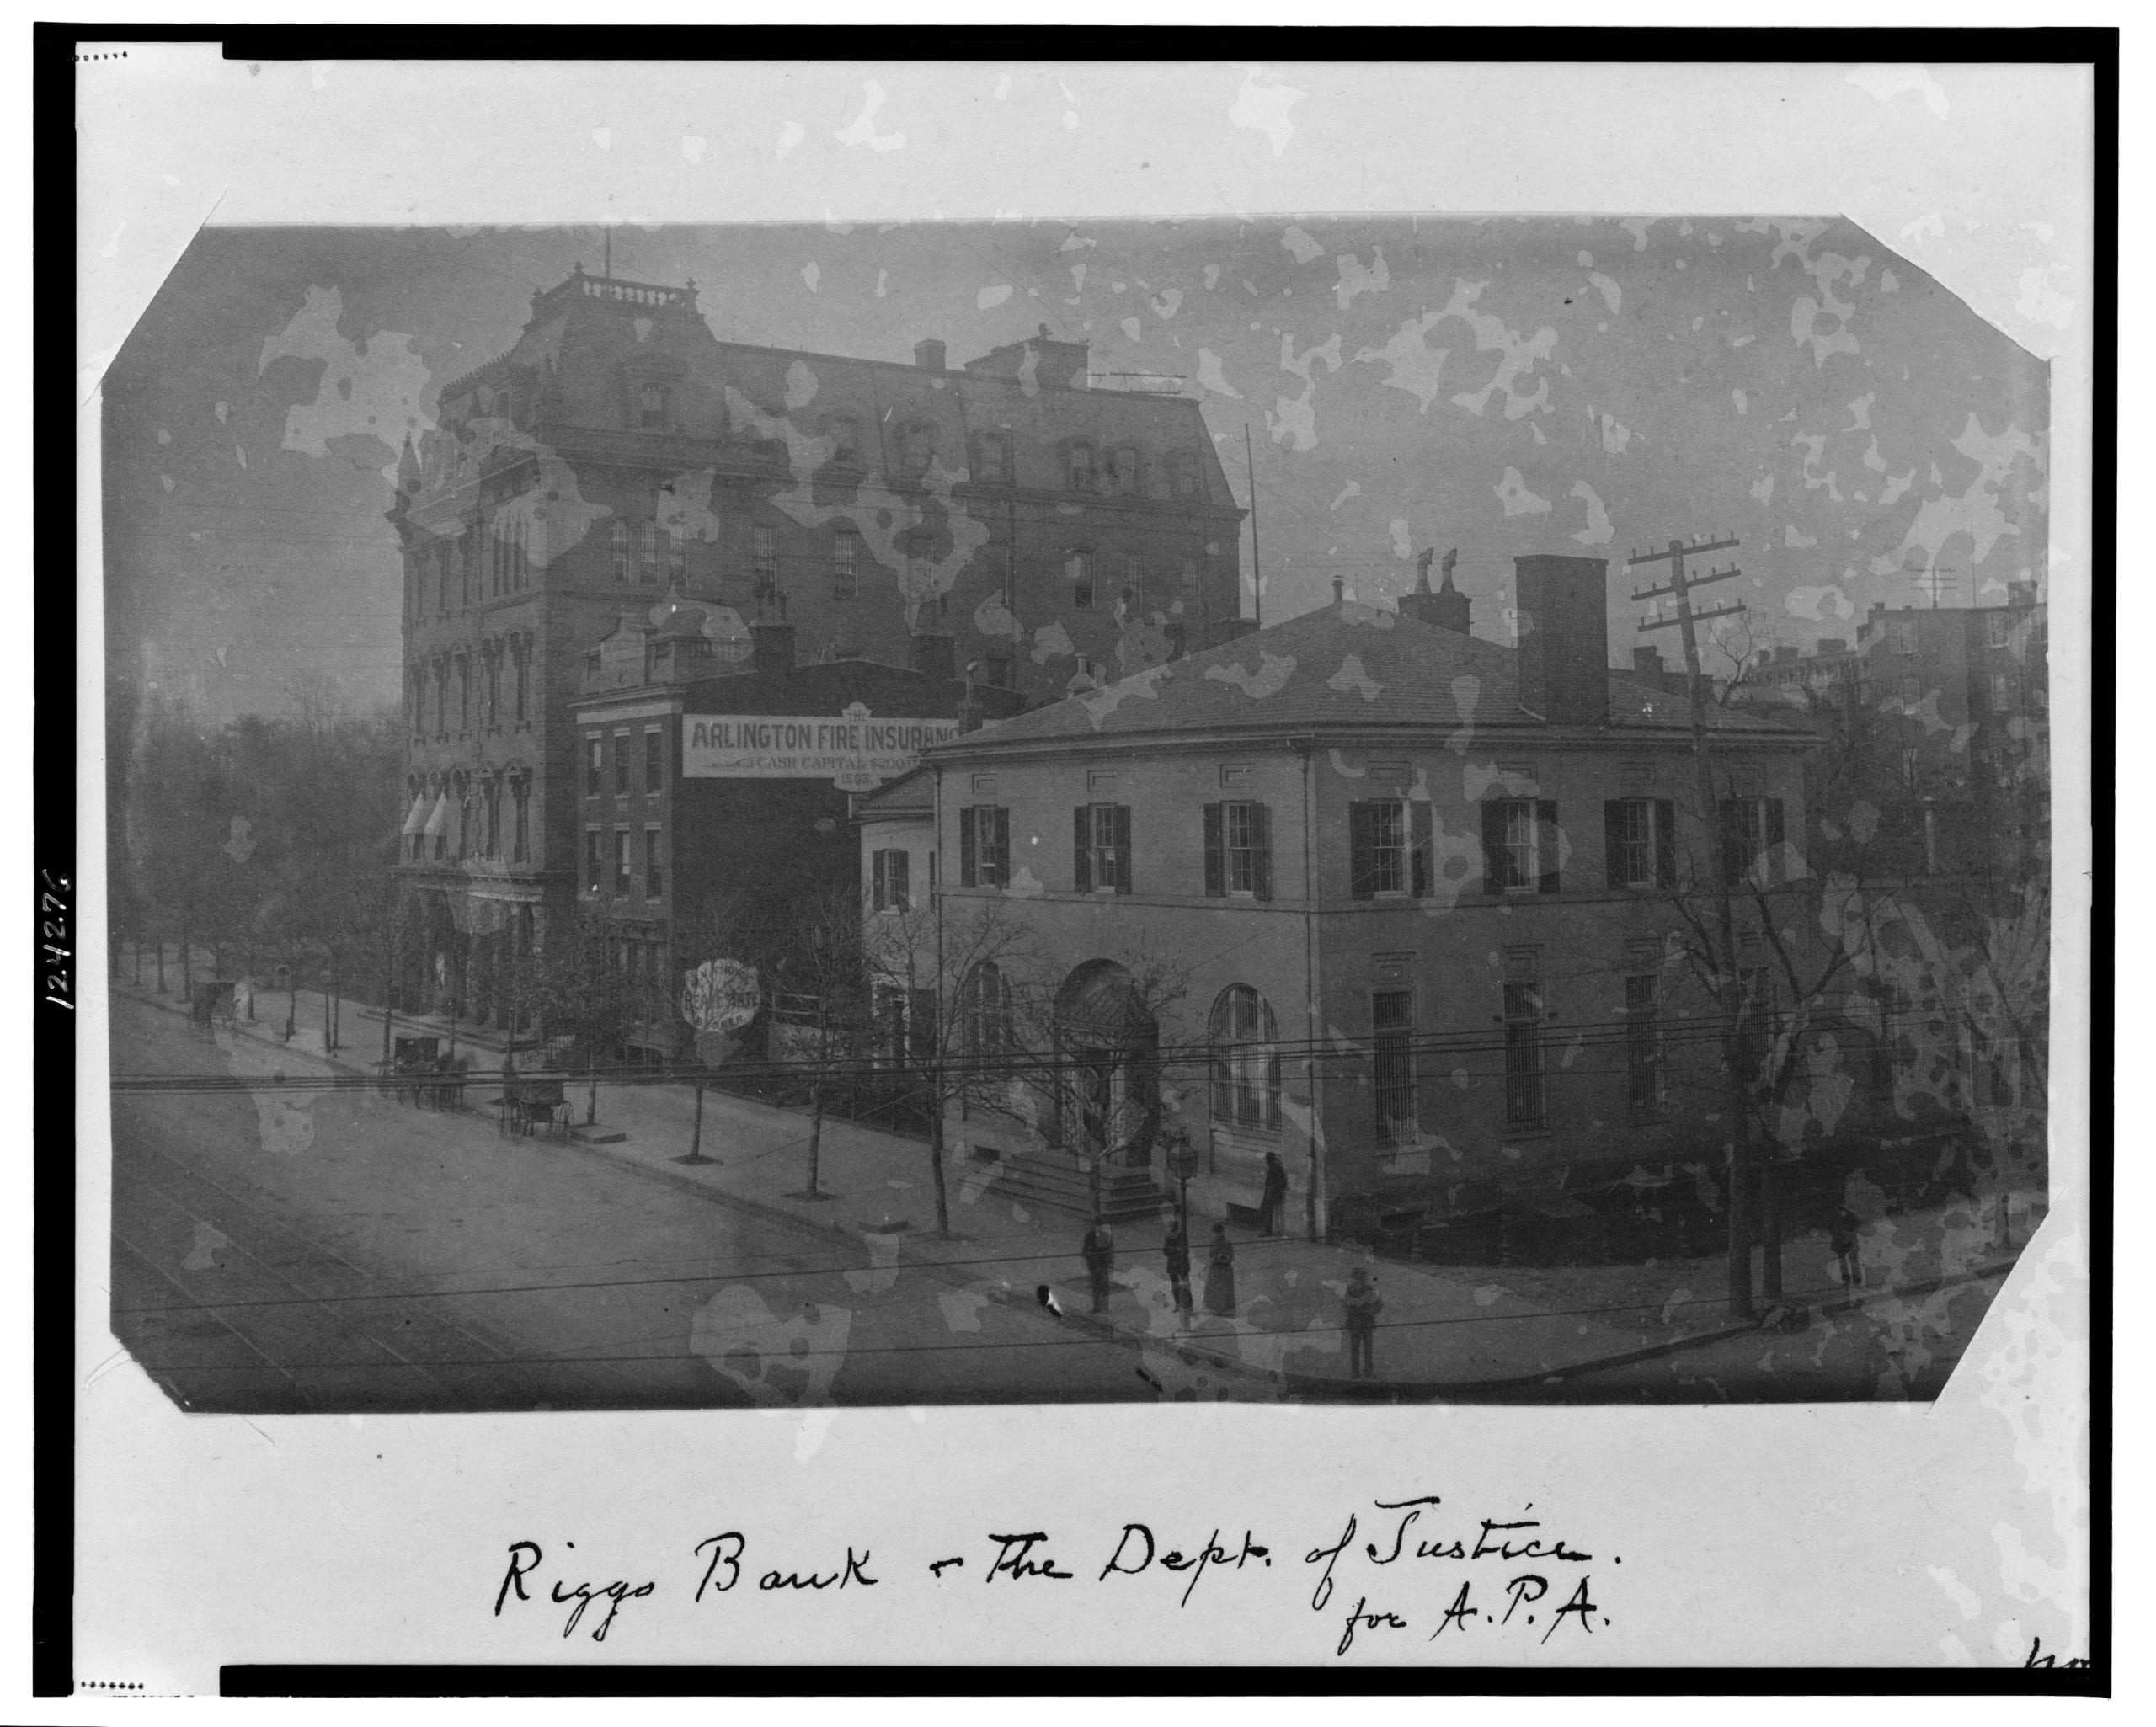 Riggs Bank & The Dept. of Justice